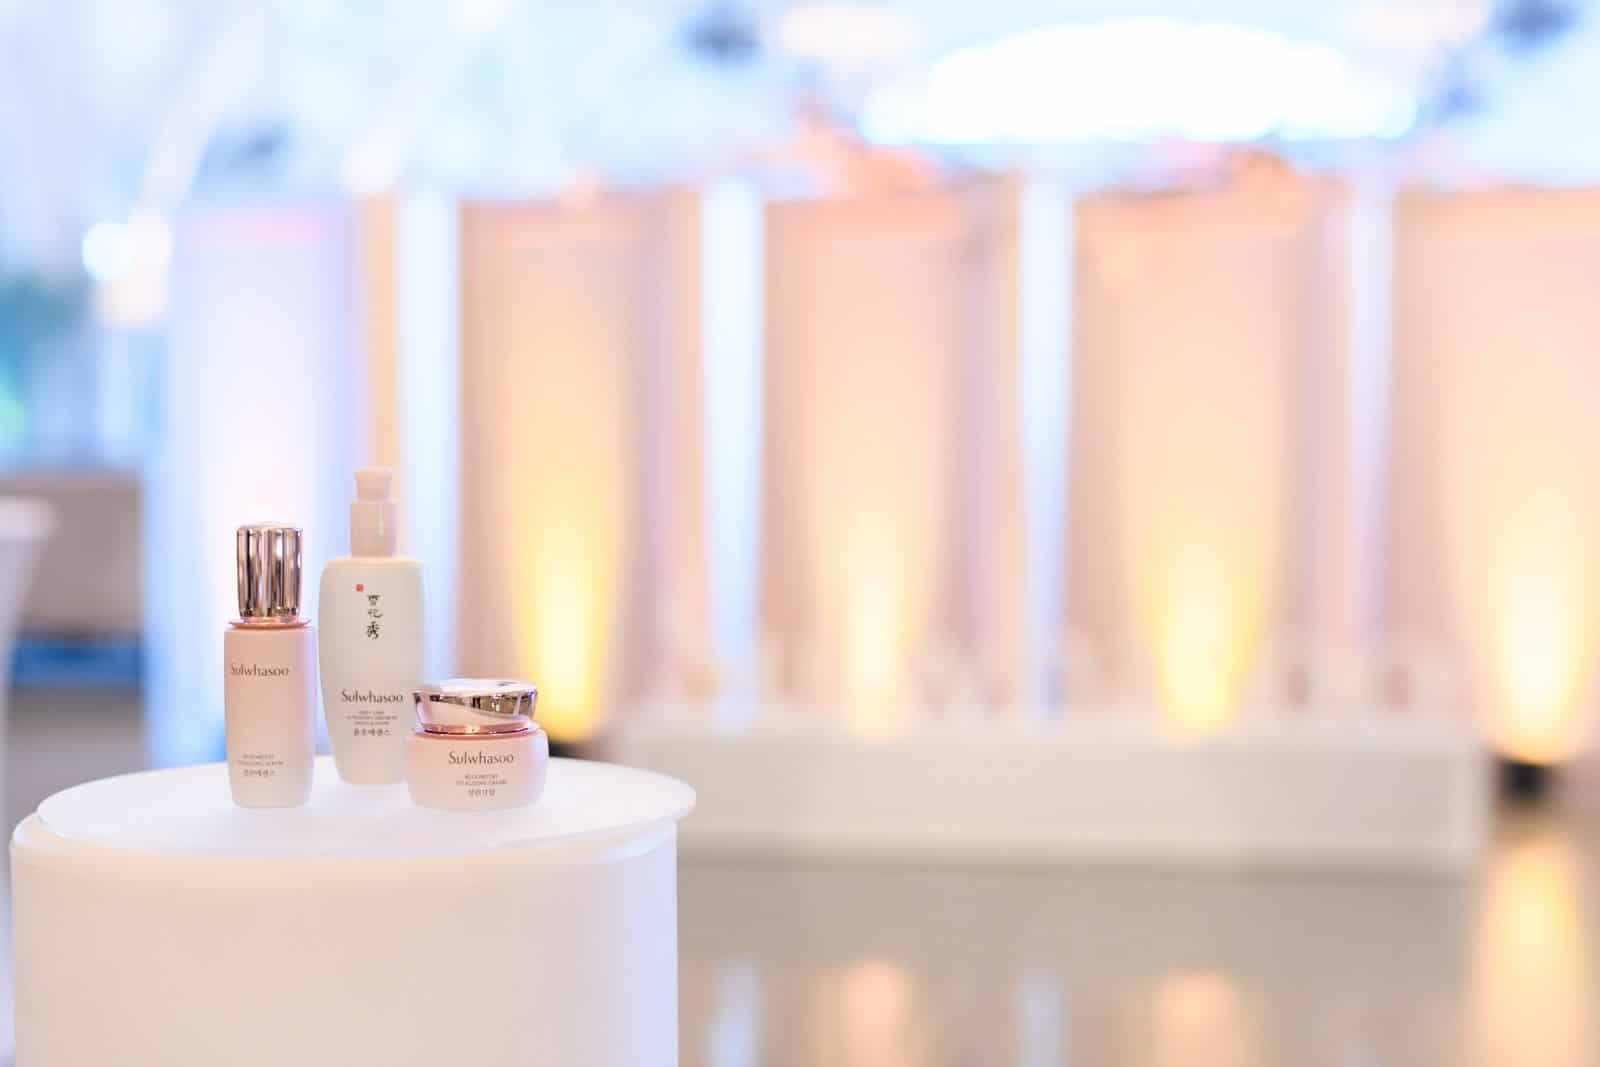 Sulwhasoo Bloomstay Vitalizing range is now available in Singapore